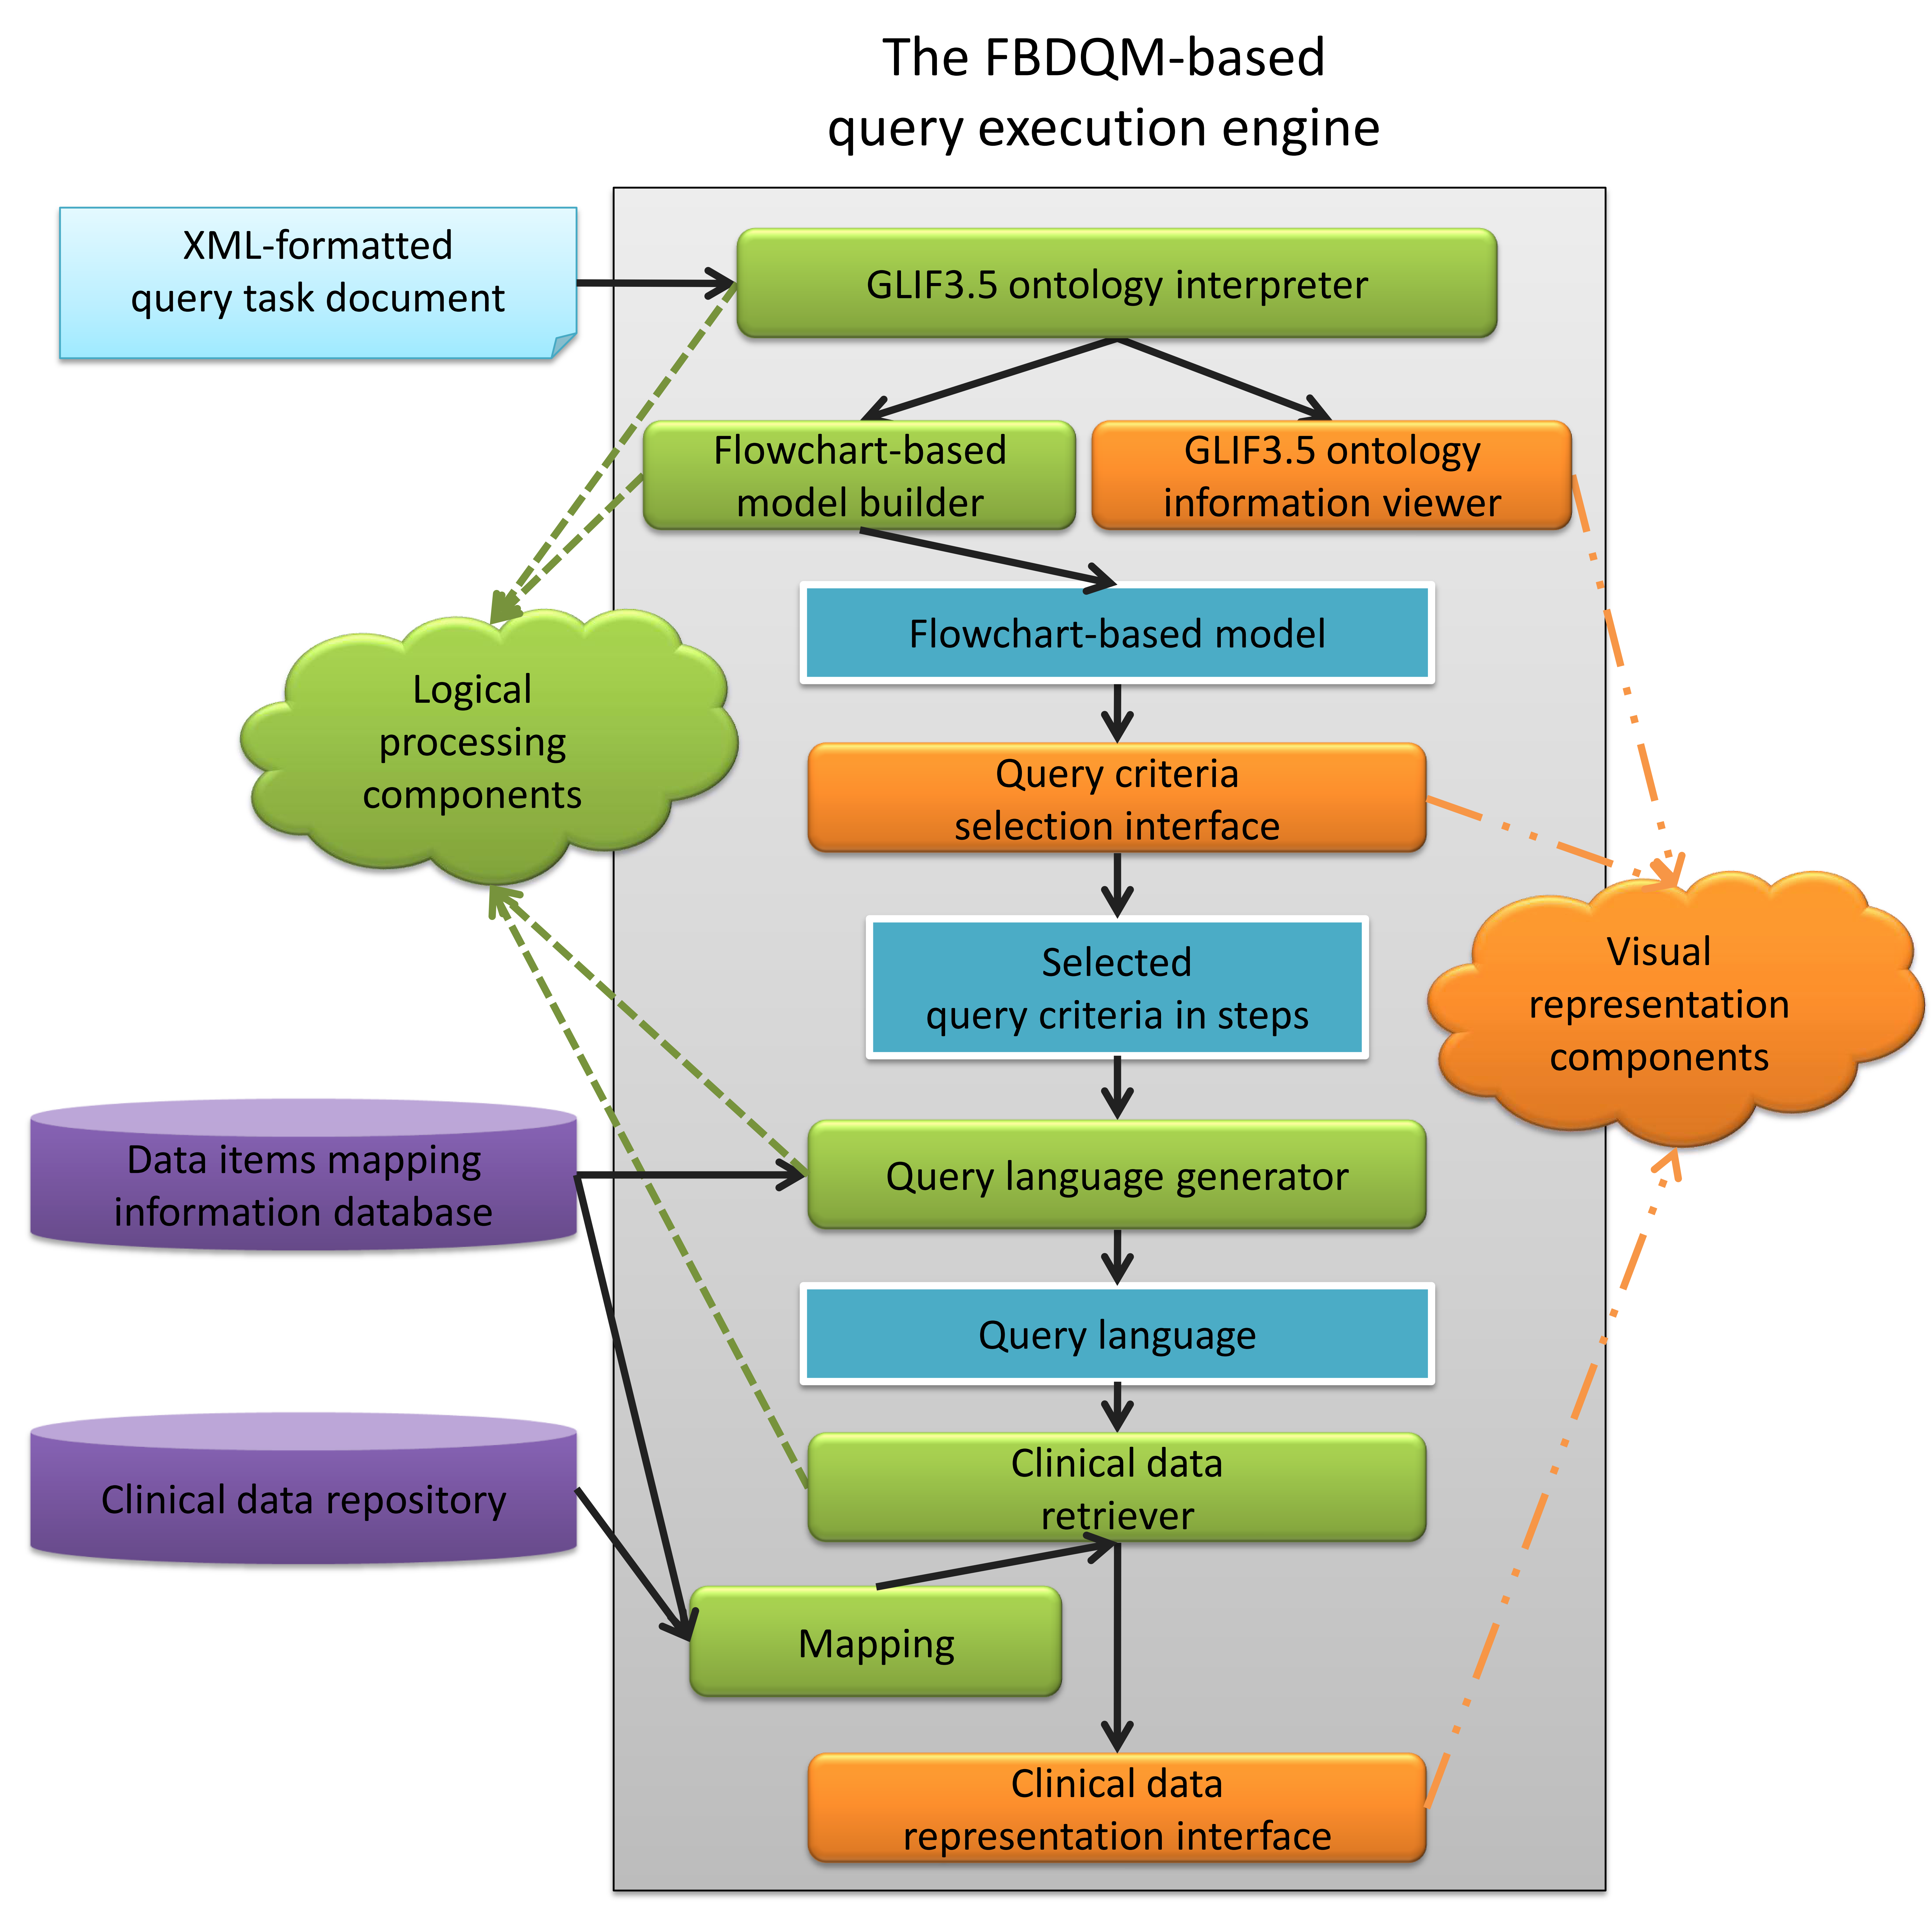 Jmi a web based data querying tool based on ontology driven the architecture of the fbdqm flowchart based data querying model based query execution engine ccuart Images